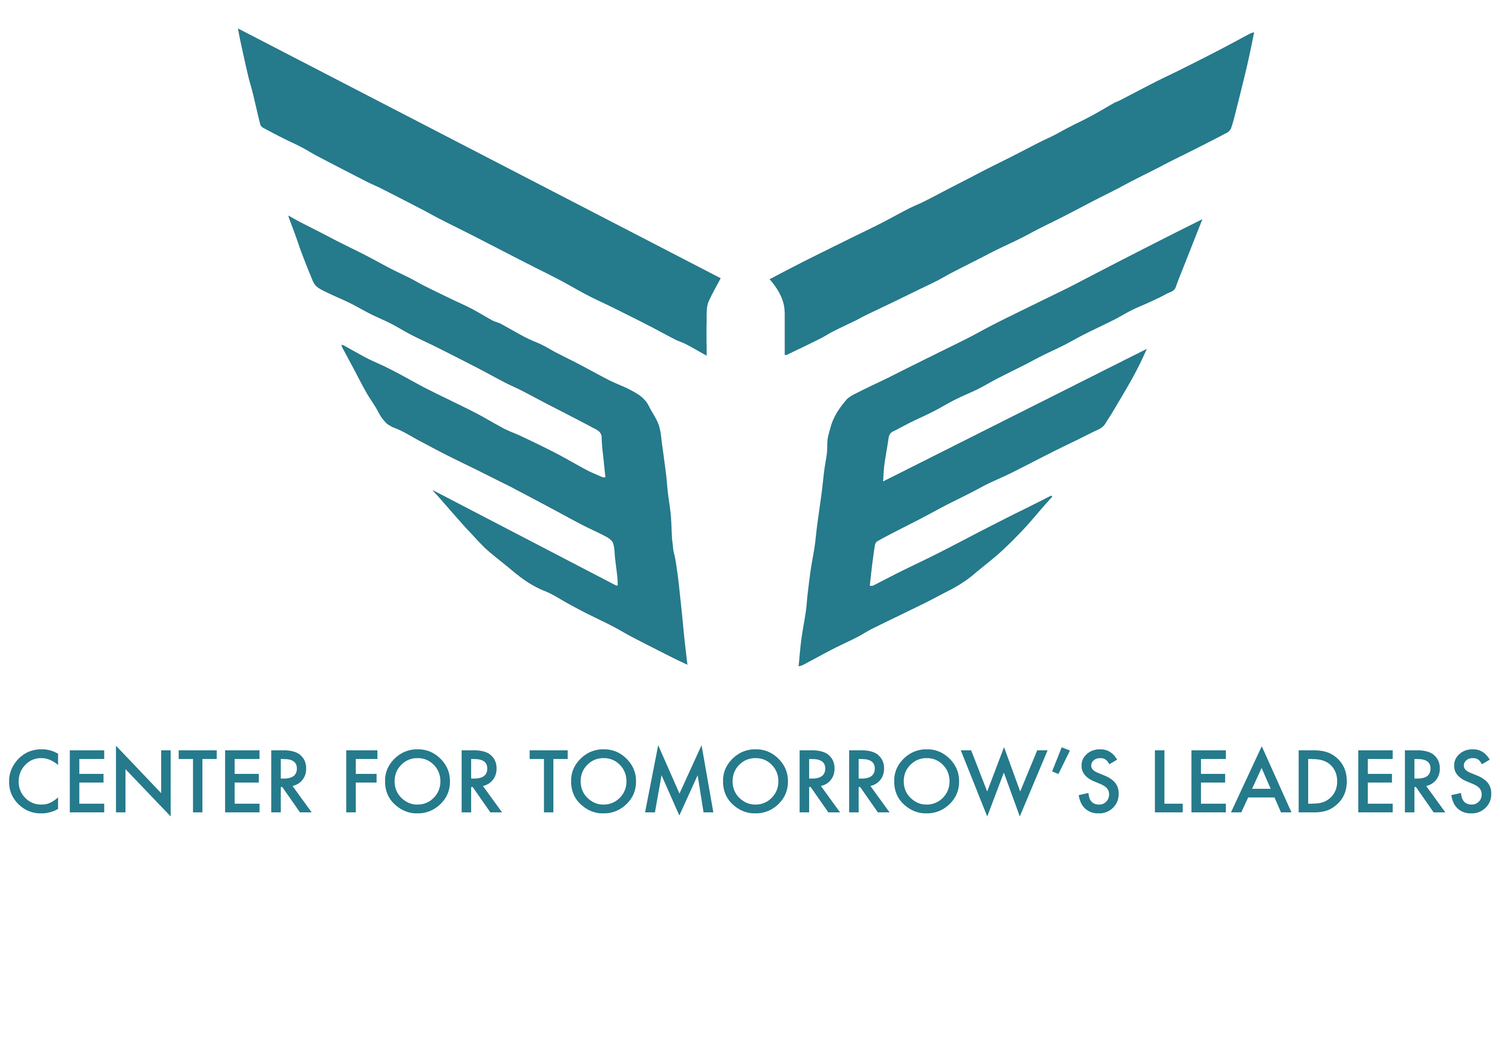 Center for Tomorrow's Leaders